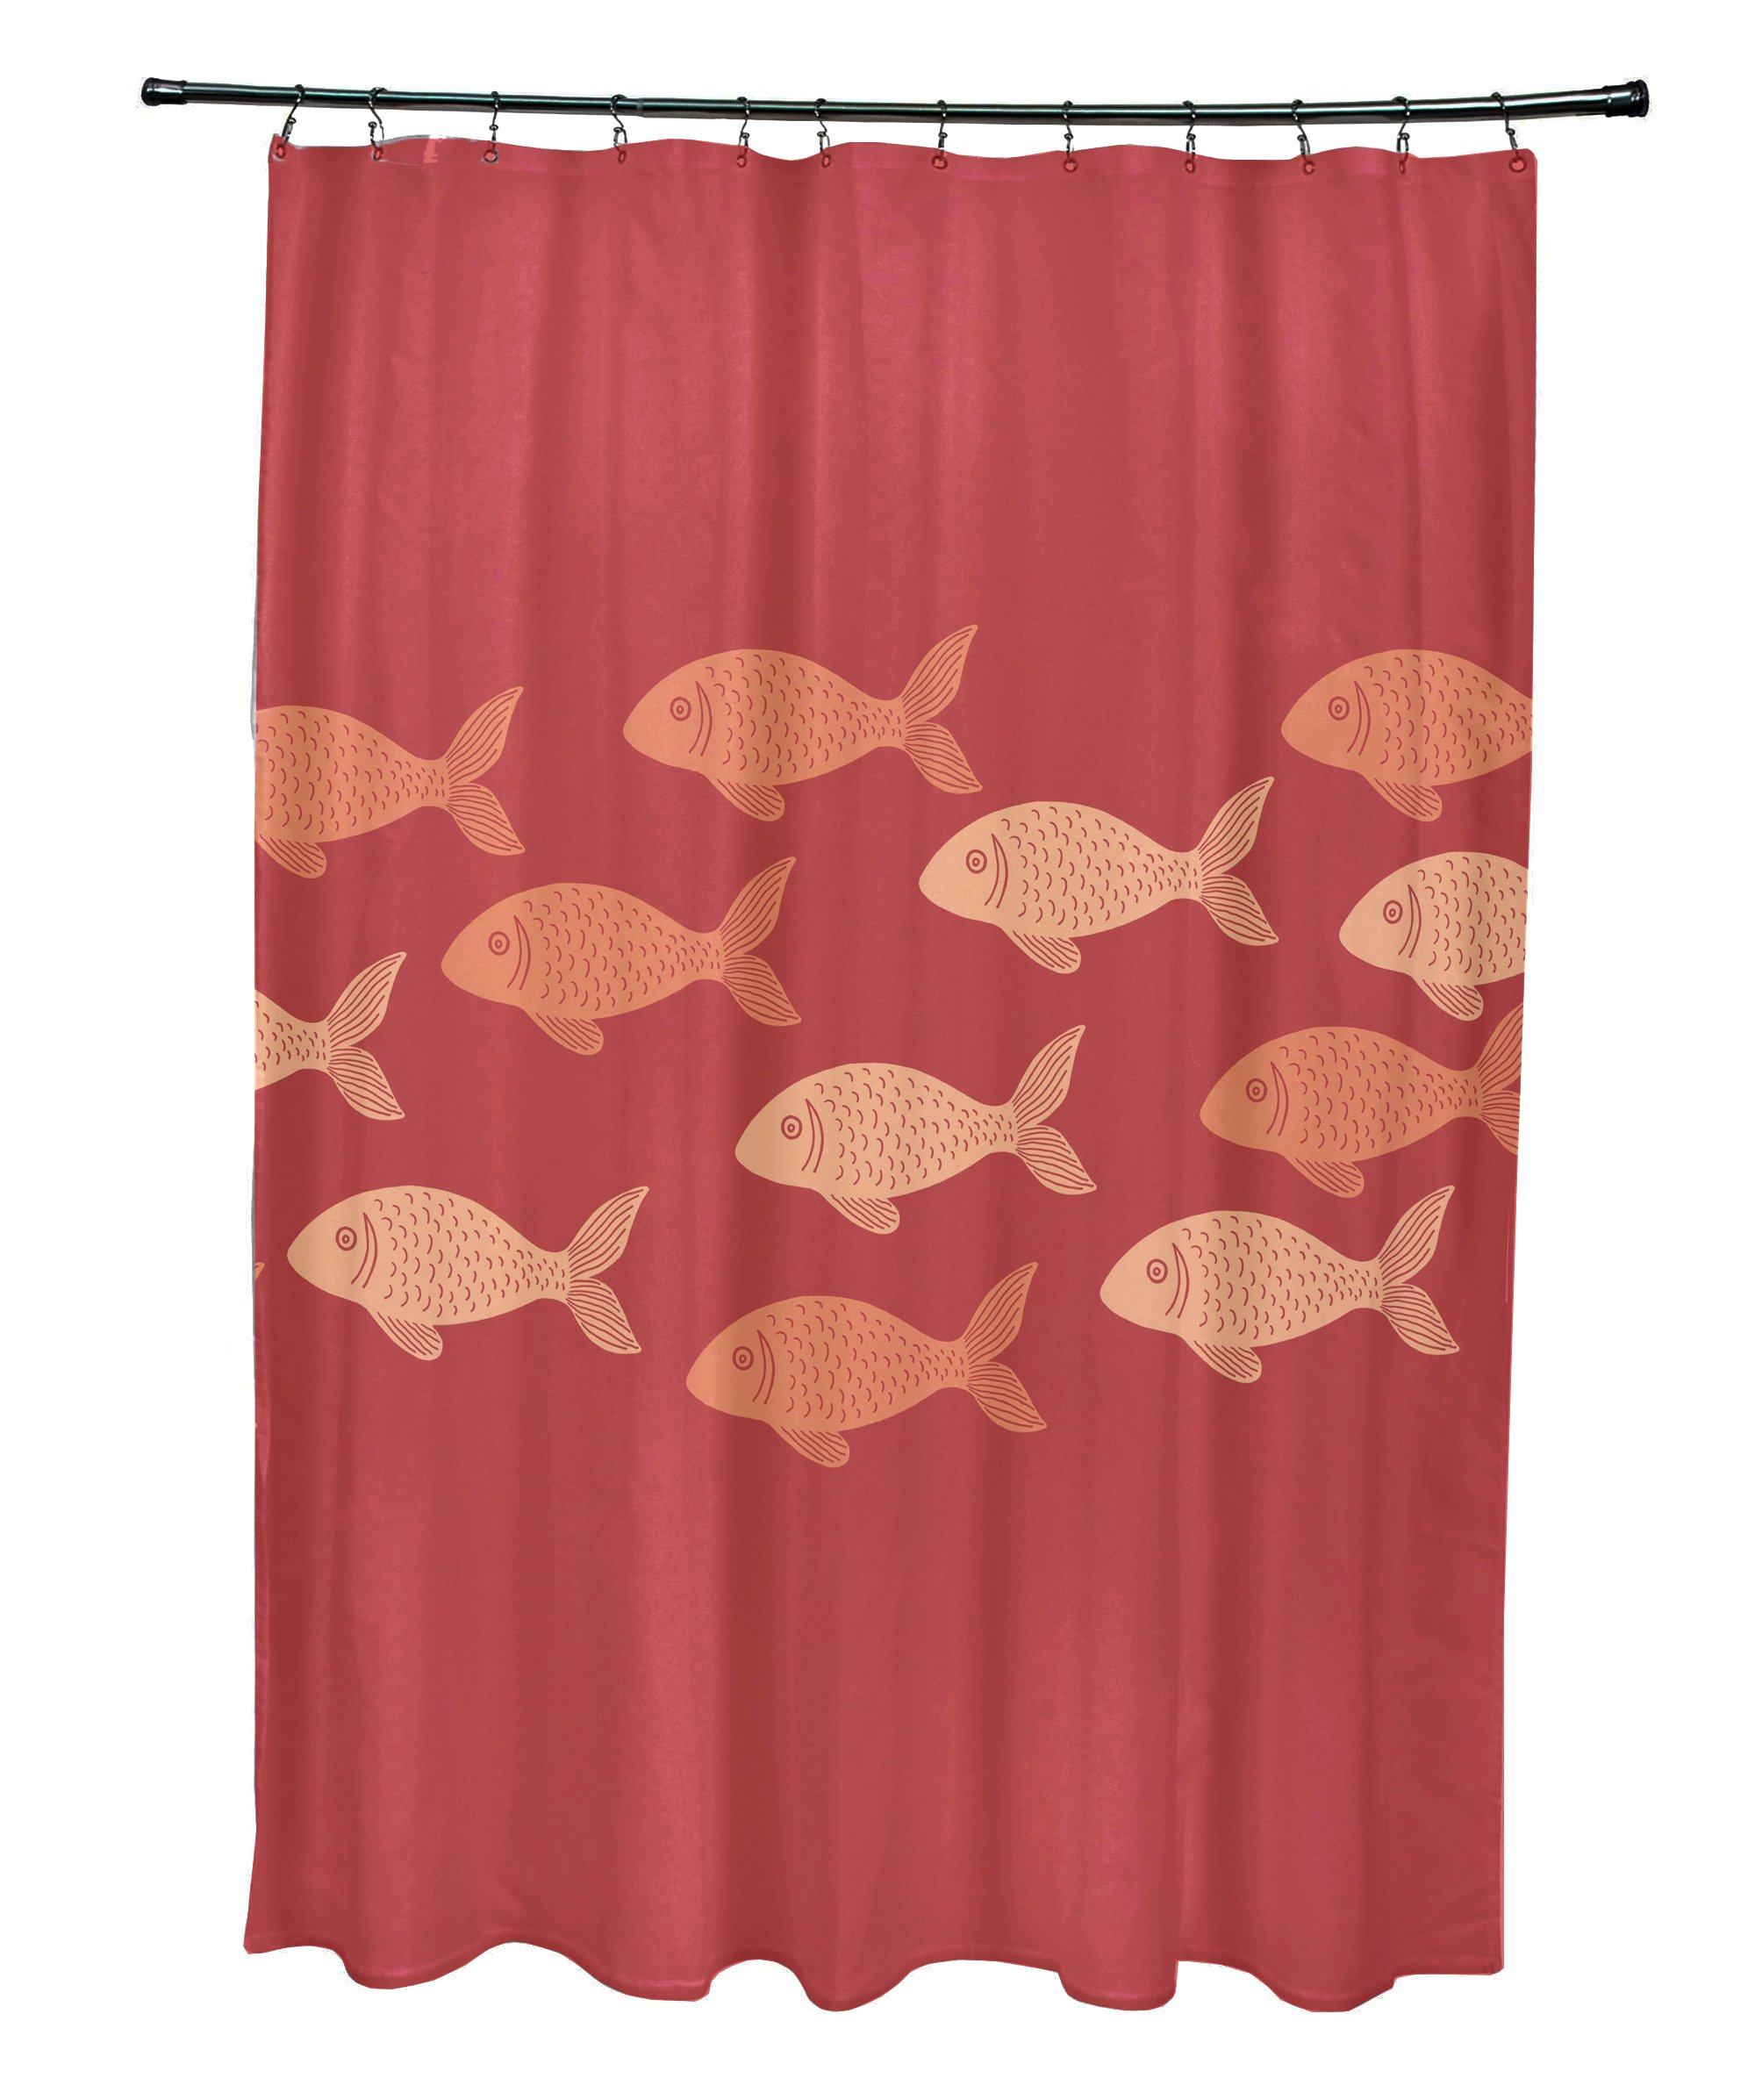 E by design 71 x 74'', Fish Line, Animal Print Shower Curtain, Coral